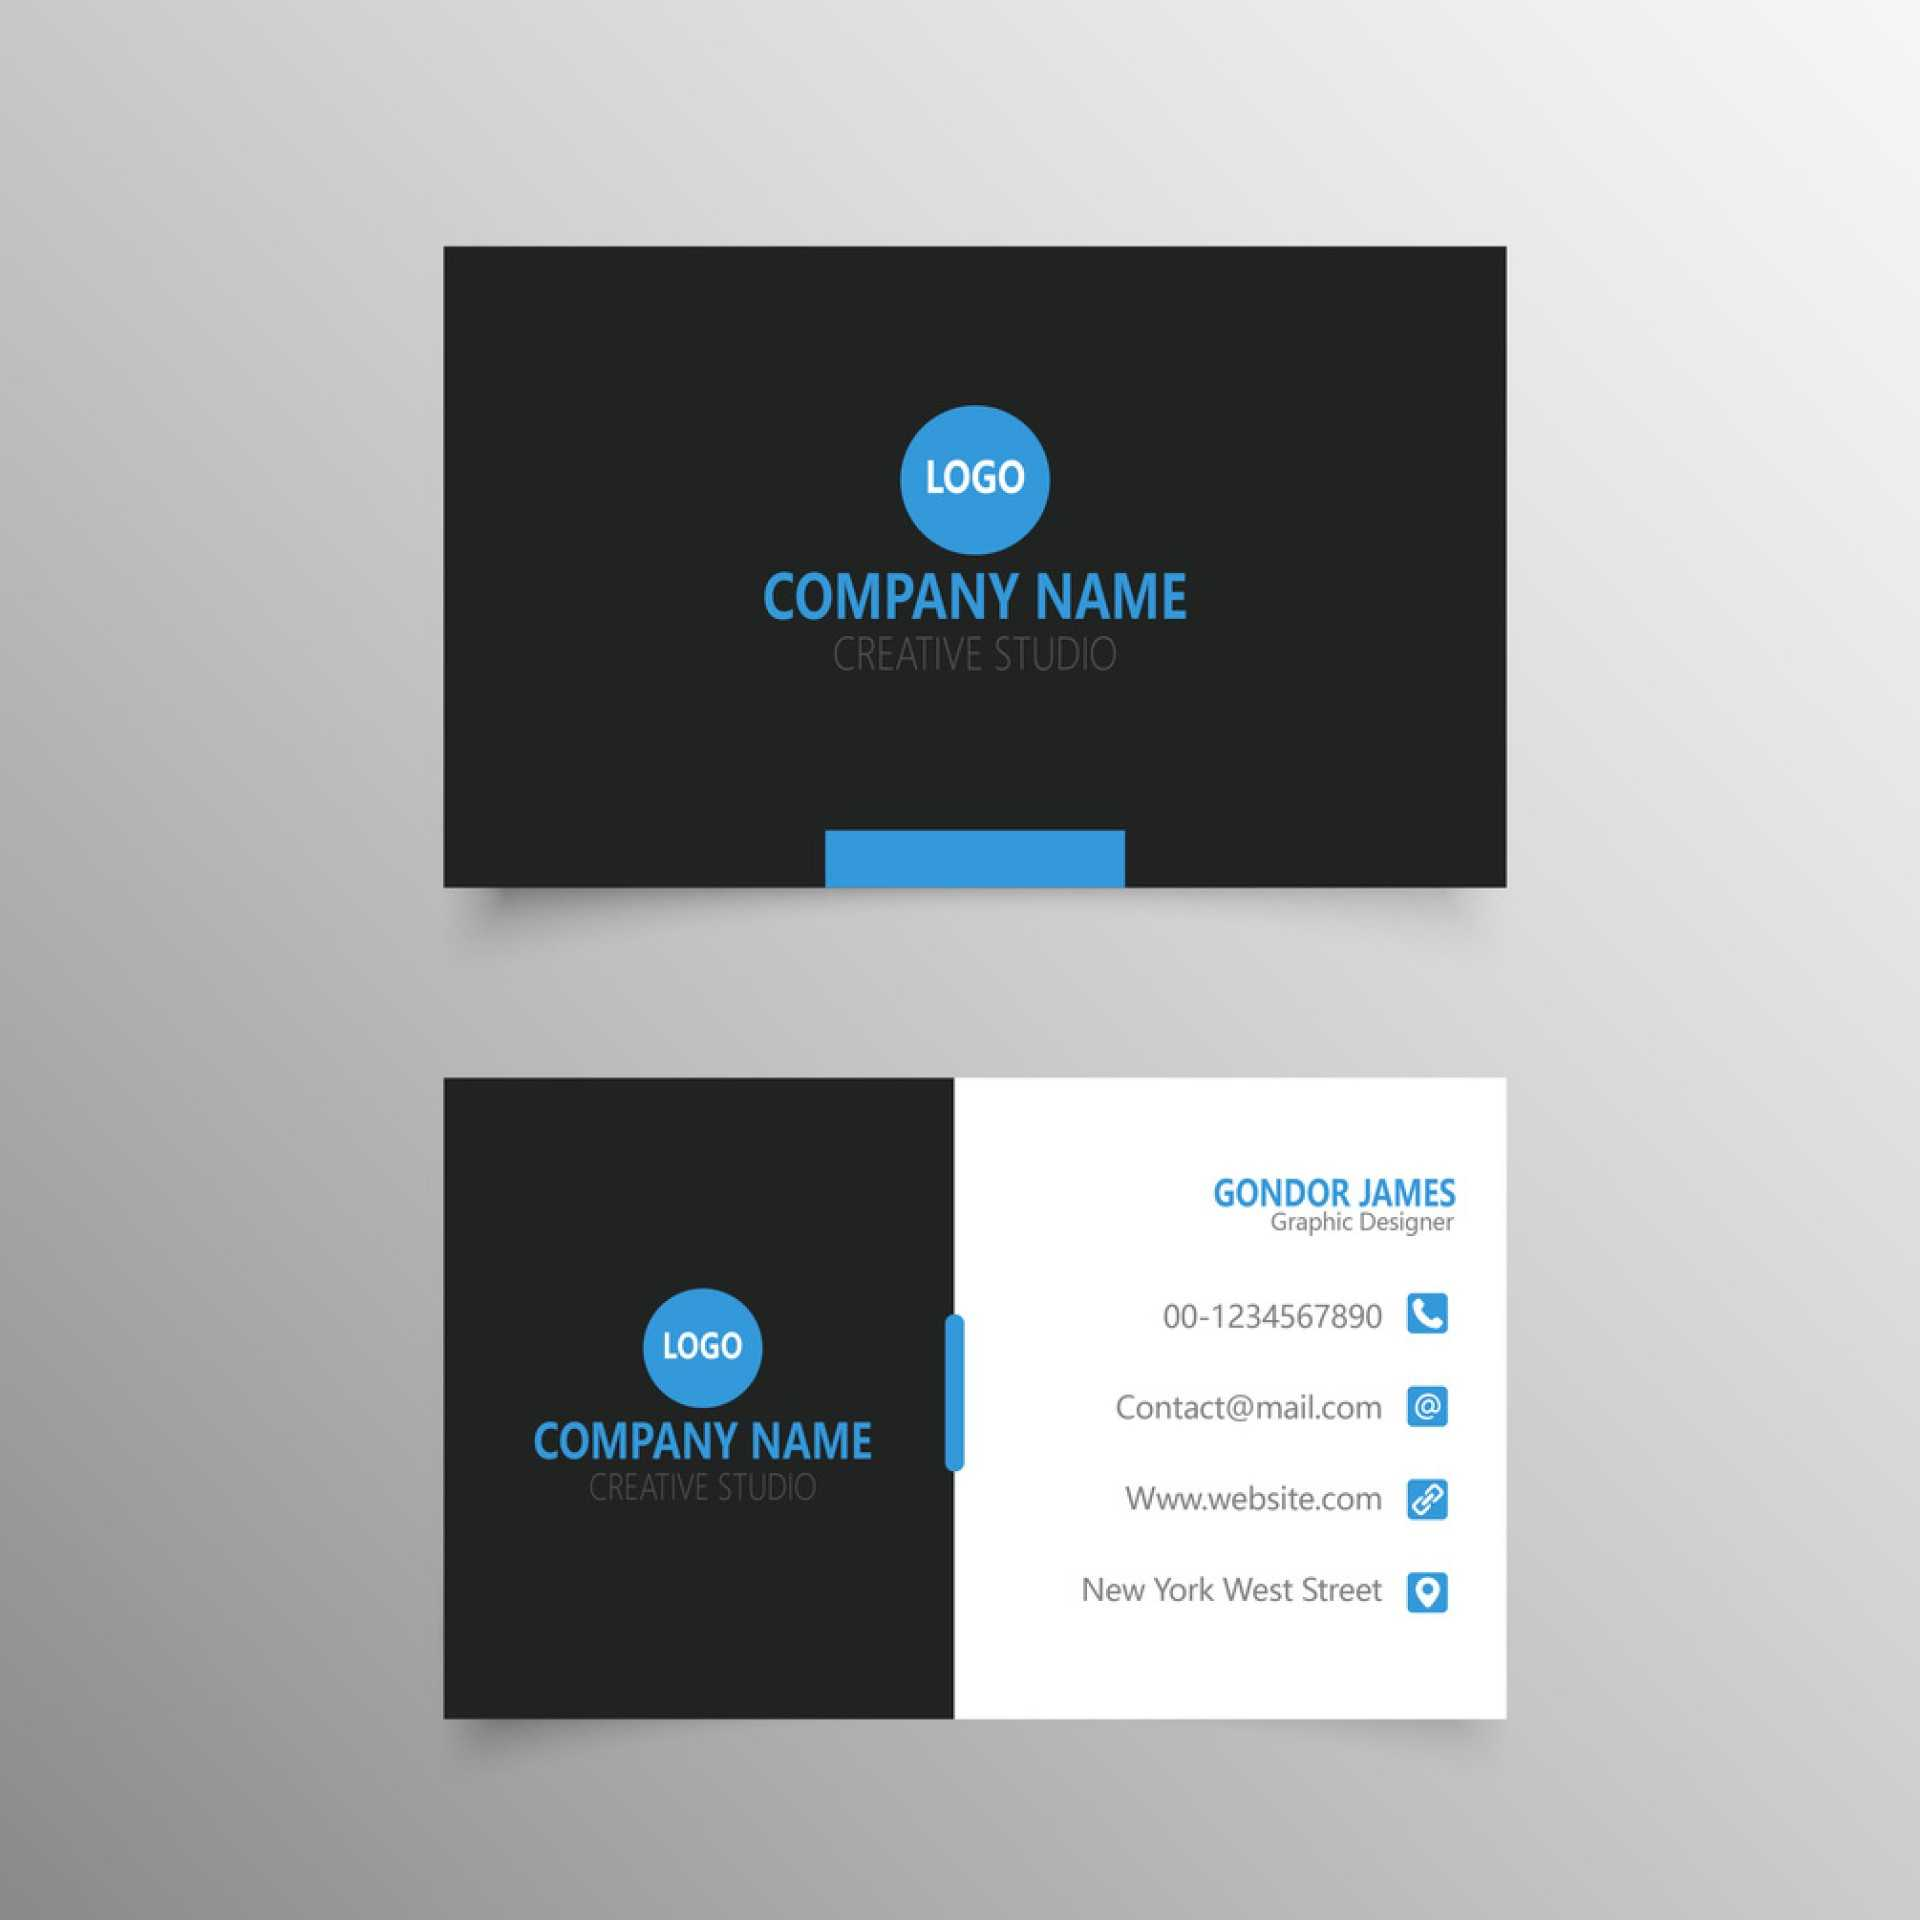 028 Lawyer Business Cards Templates Free Download Template Throughout Legal Business Cards Templates Free